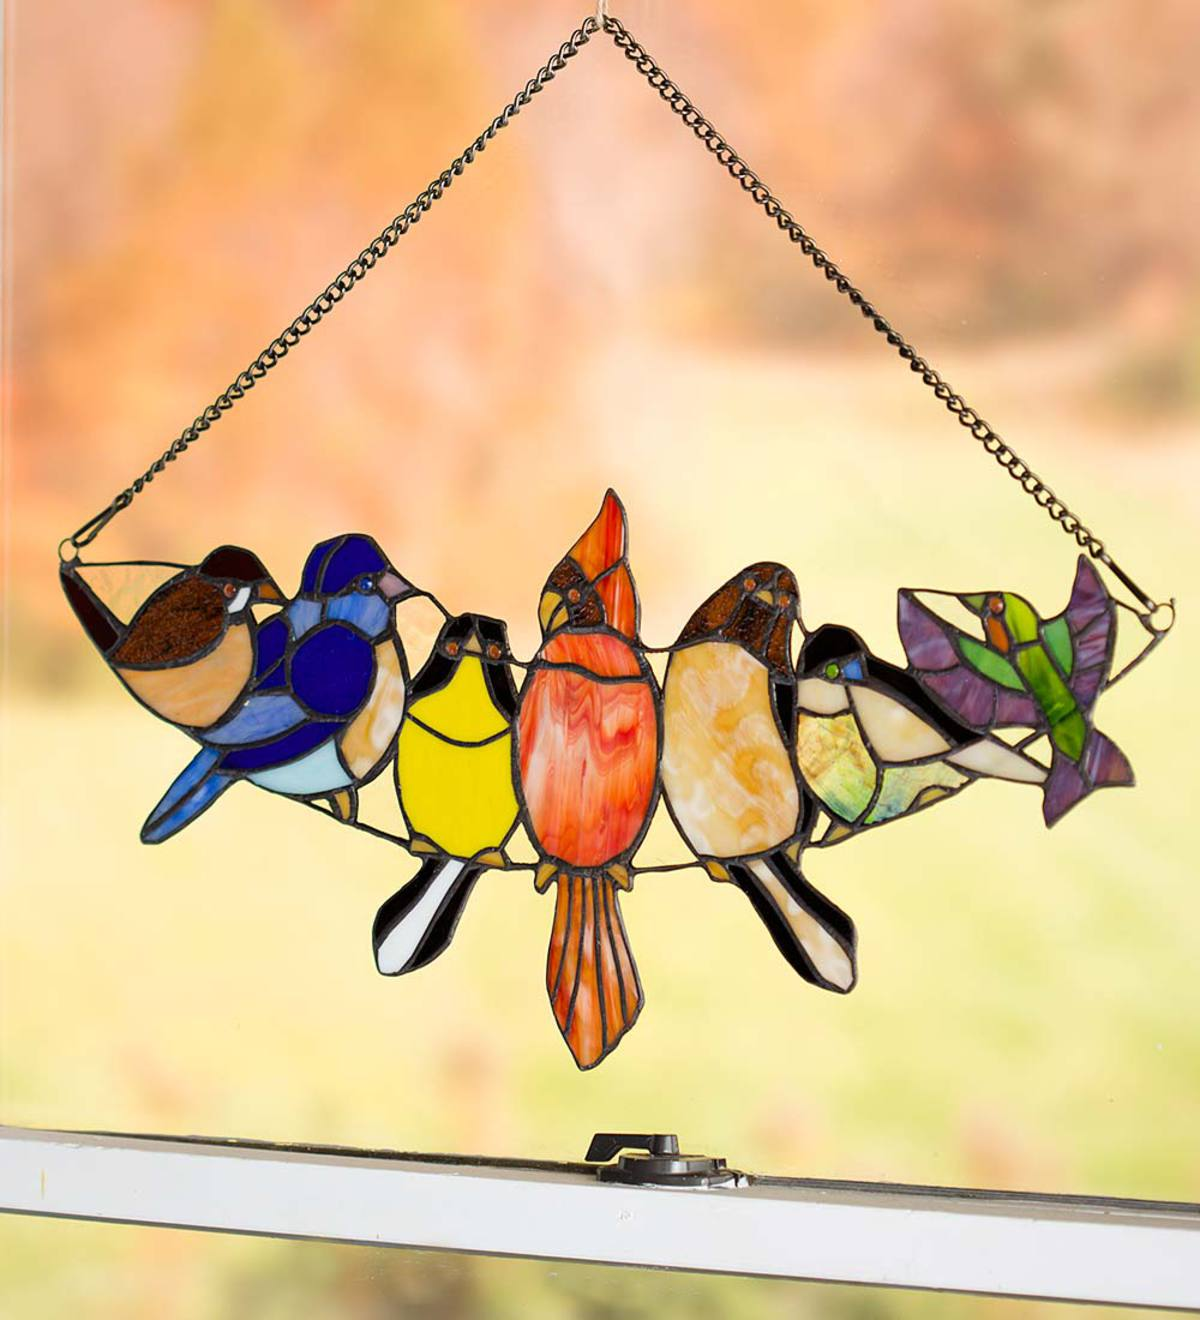 Hanging Stained Glass Bird Art